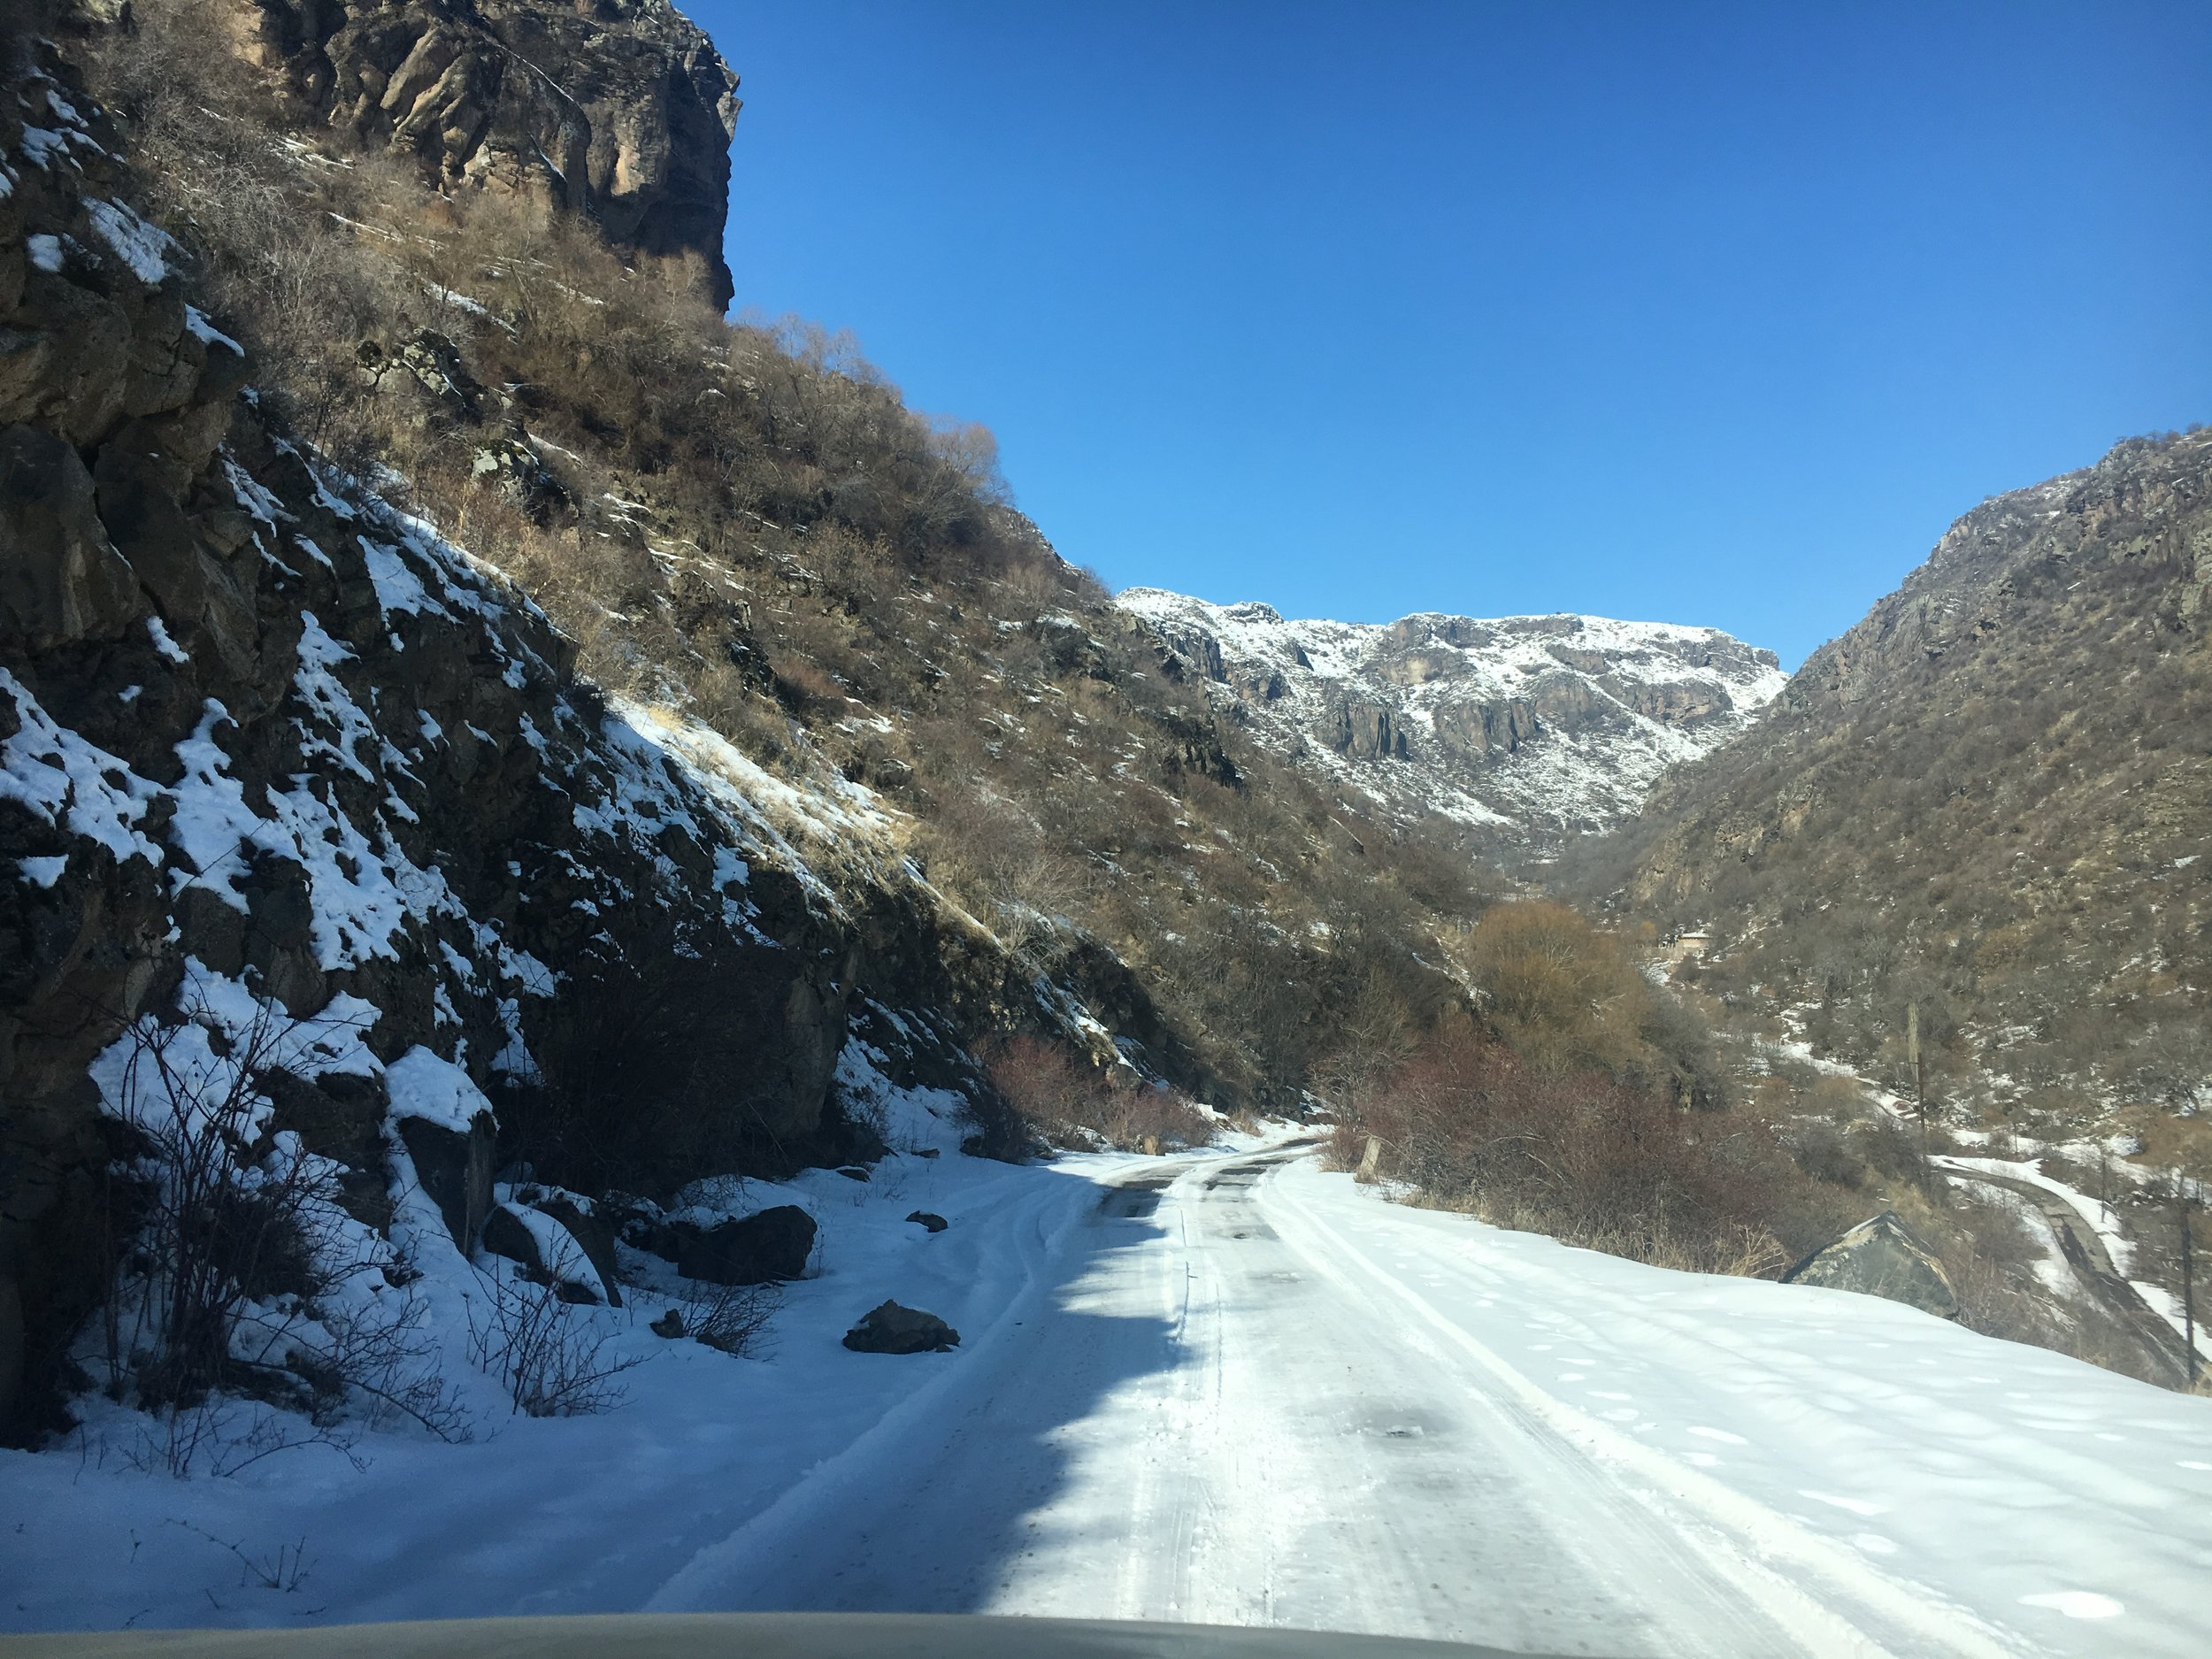 Driving down steep icy mountain roads in Aragatsotn Province on the way towards Amberd Fortress in the dead of winter.